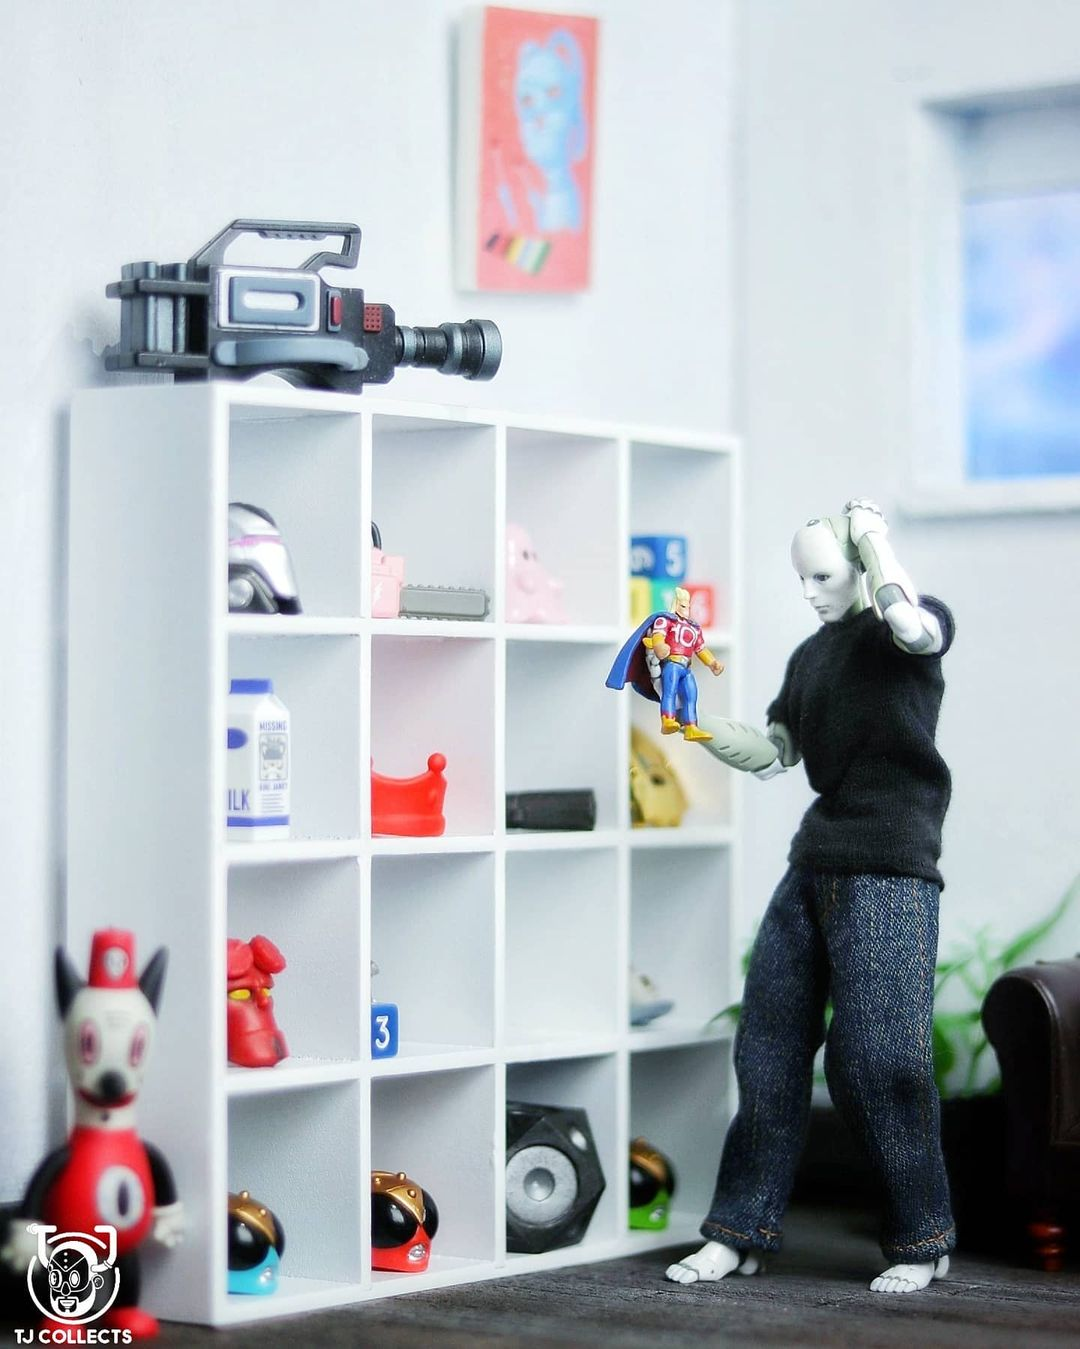 1000toys synthetic human figure with miniature display